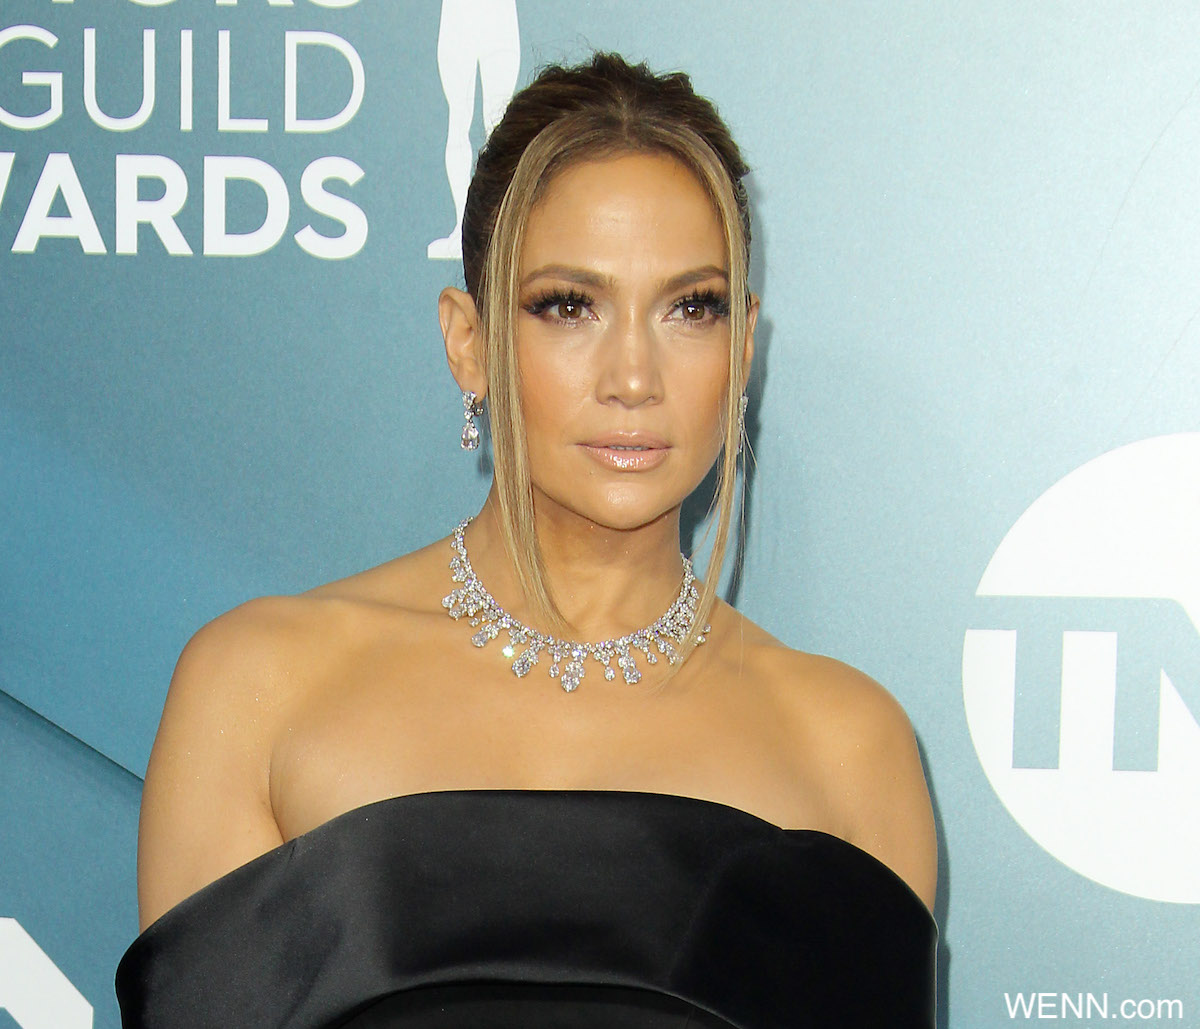 26th Annual SAG Awards Arrivals 2019 held at Shrine Auditorium in Los Angeles California. Featuring: Jennifer Lopez Where: Los Angeles, California, United States When: 19 Jan 2020 Credit: Adriana M. Barraza/WENN